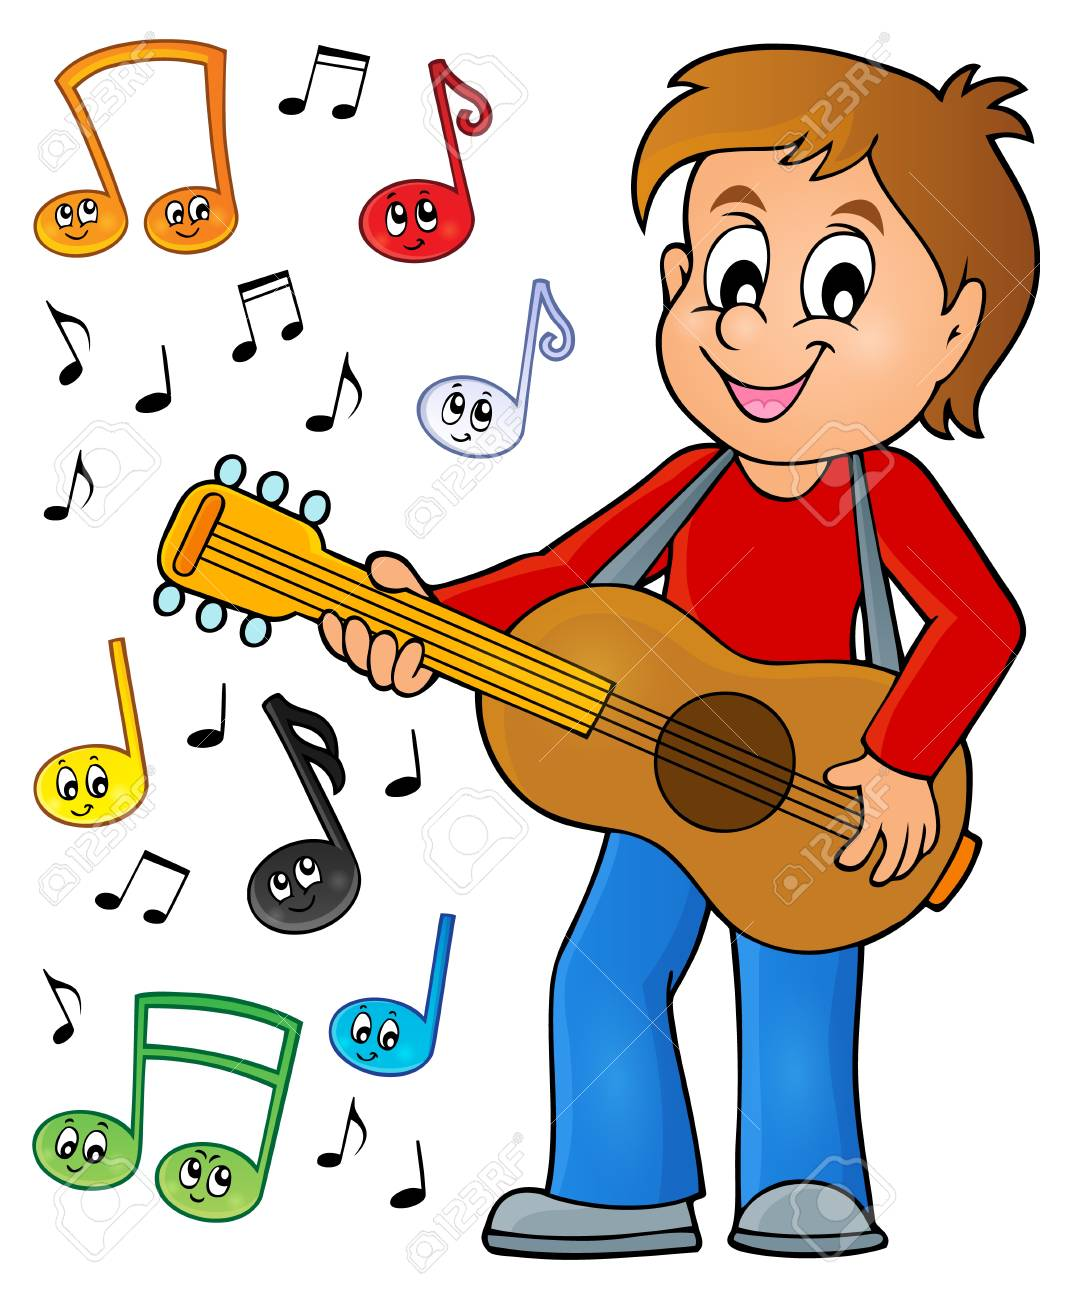 Boy guitar player theme image 2 » Clipart Station.